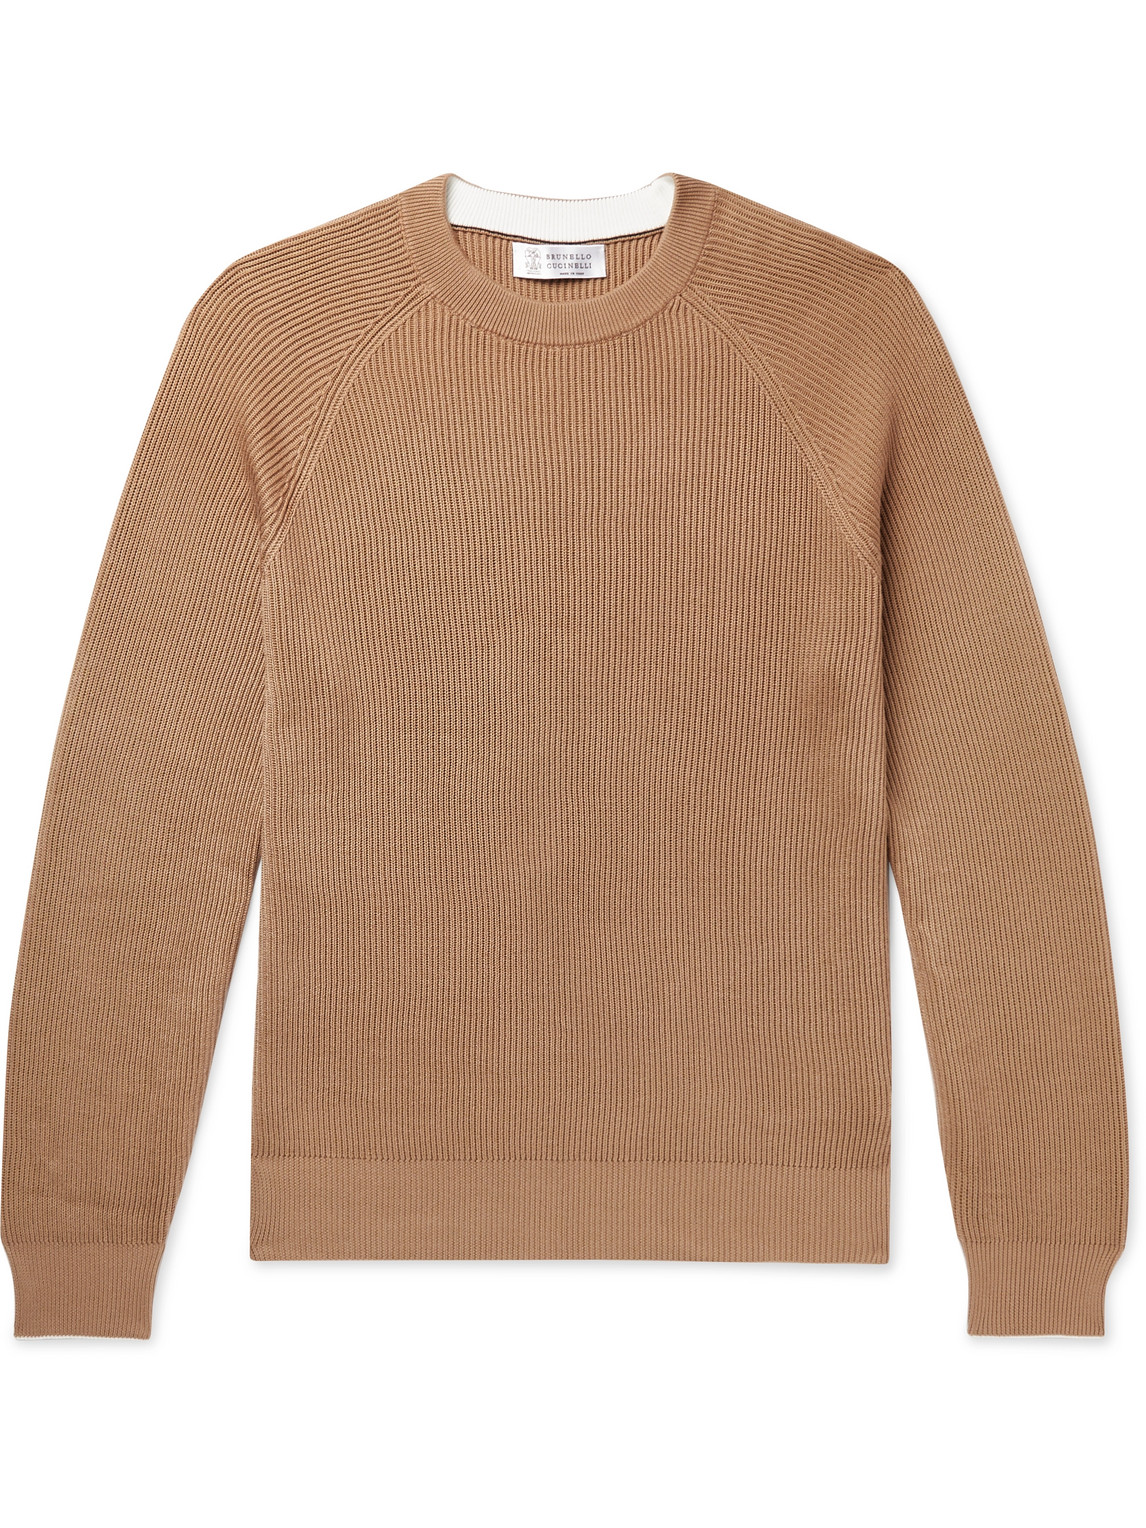 brunello cucinelli - contrast-tipped ribbed cotton sweater - men - neutrals - it 46